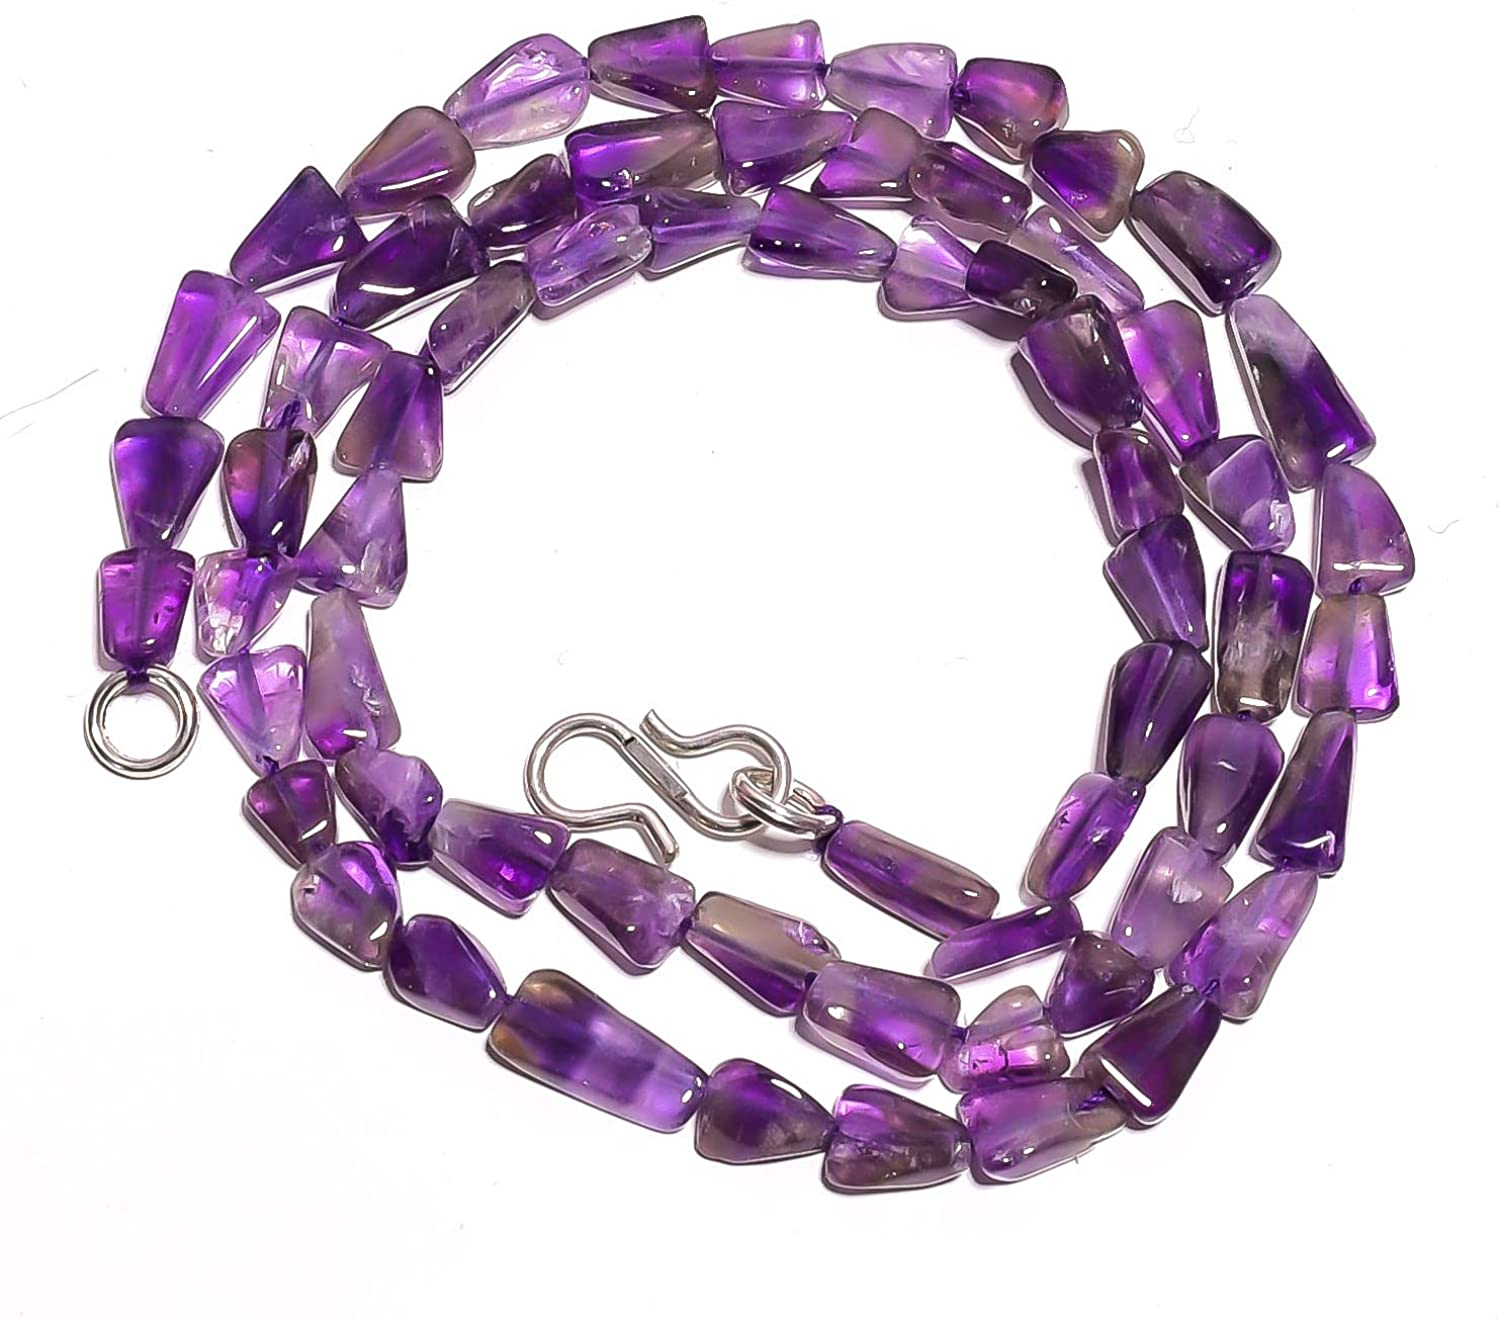 kanta incorporation Natural Amethyst Gemstone Flat Triangle Smooth Beads Necklace 18